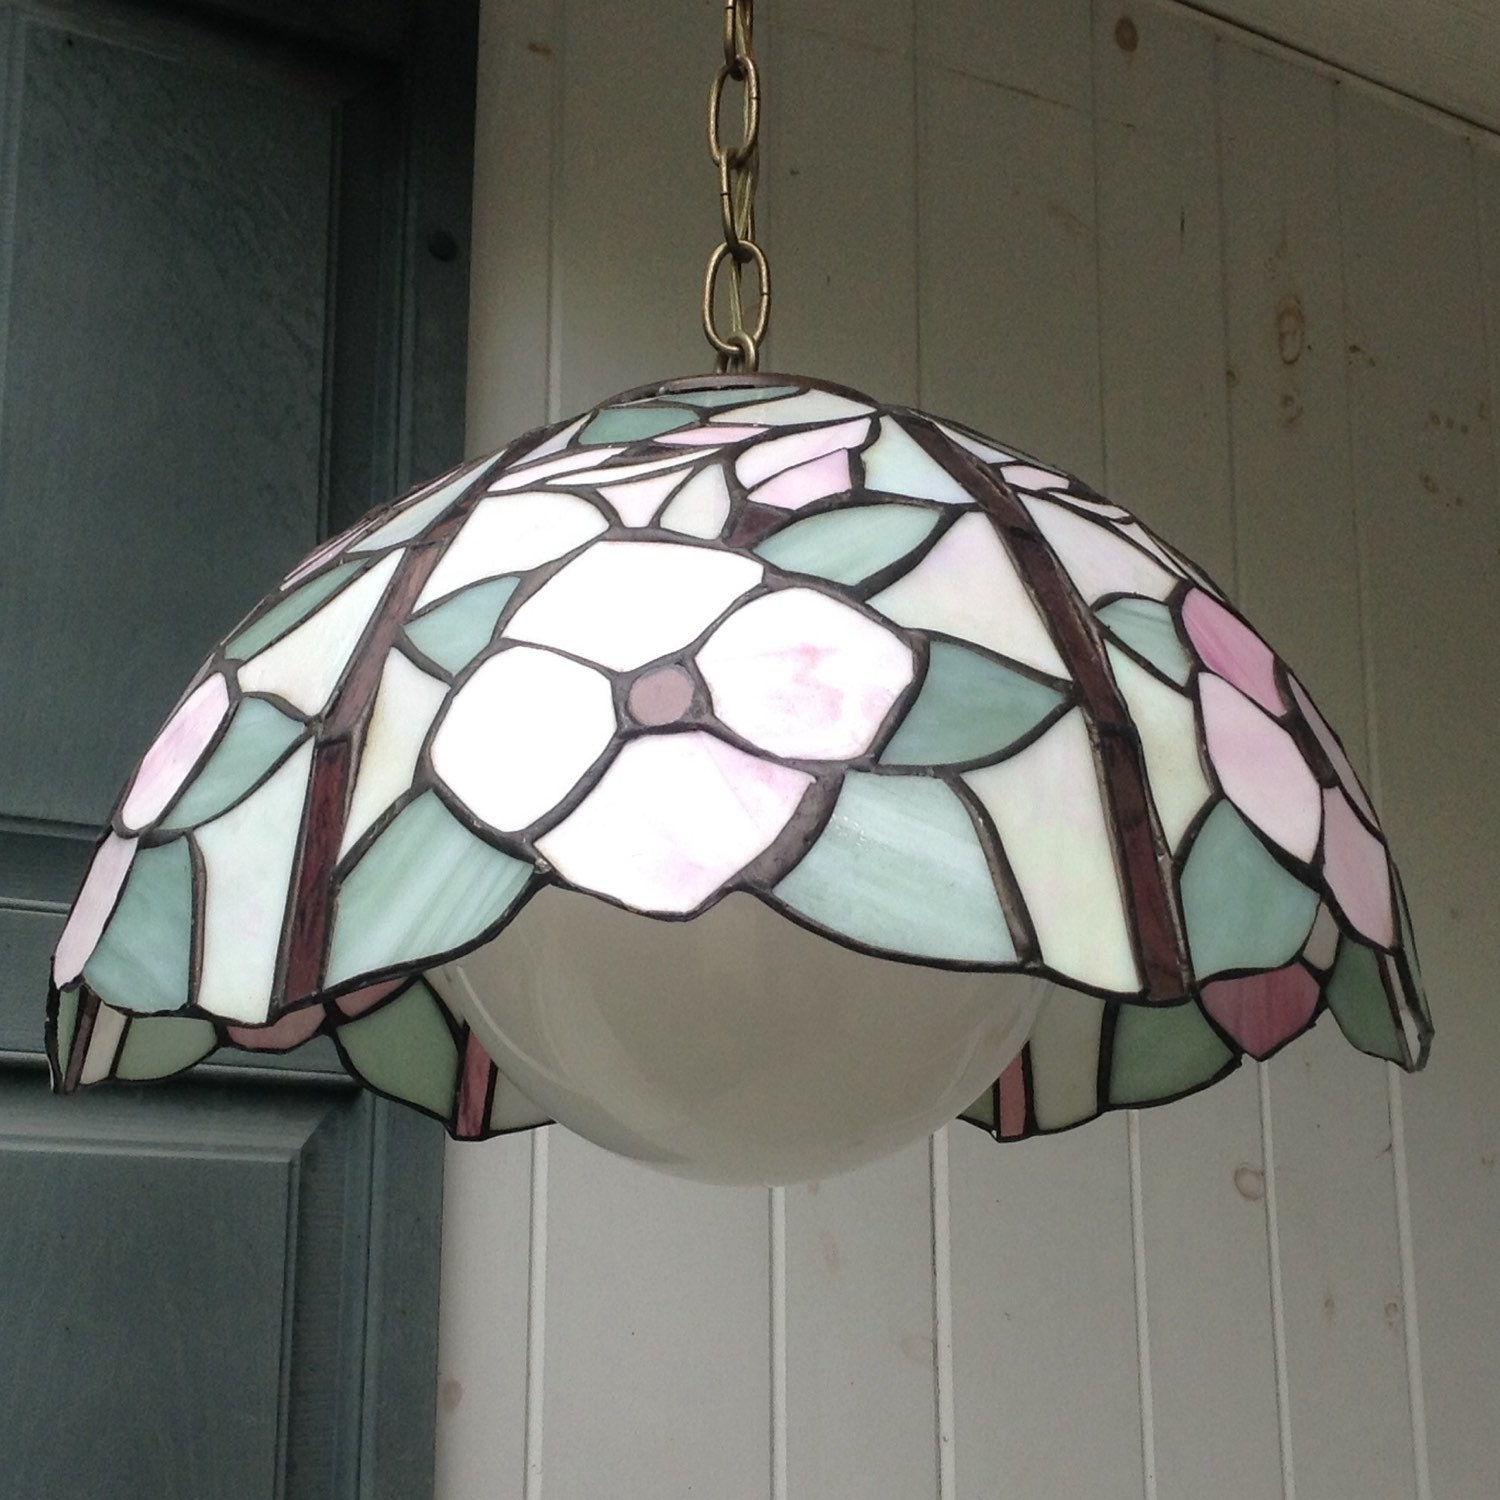 tiffany style stained glass hanging light fixture w glass. Black Bedroom Furniture Sets. Home Design Ideas